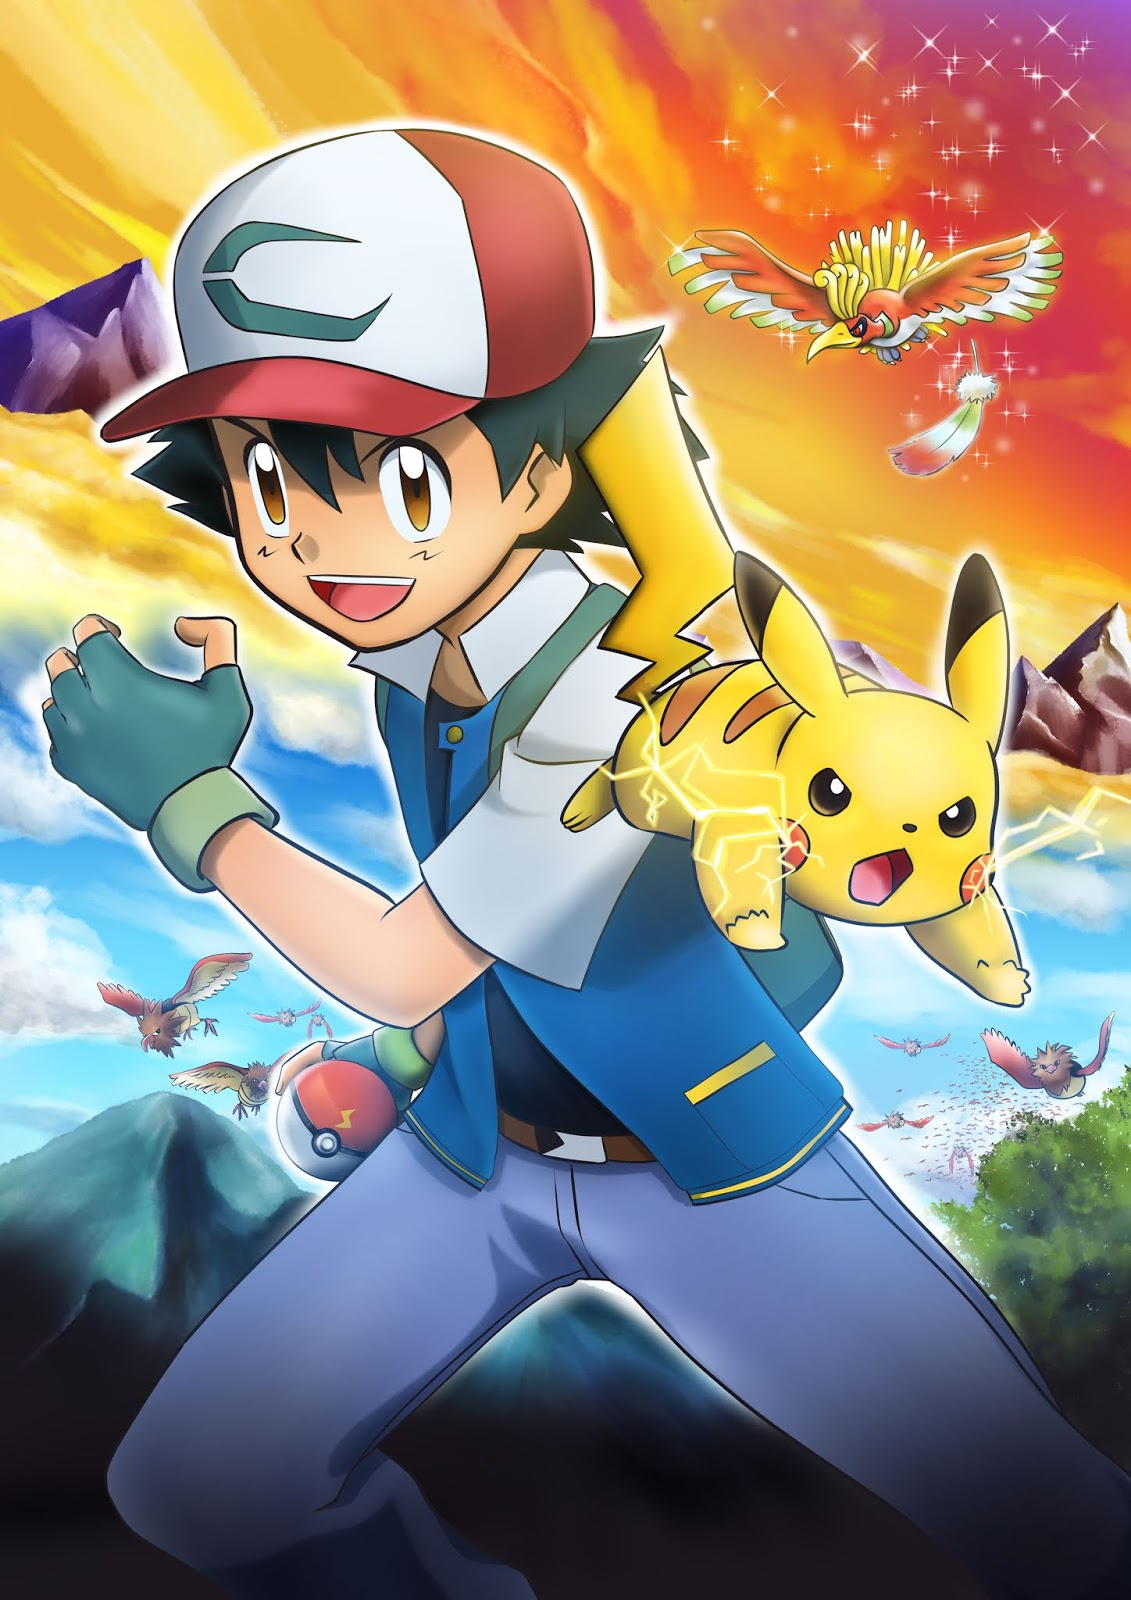 pok233mon the full movie i choose you watch anime online